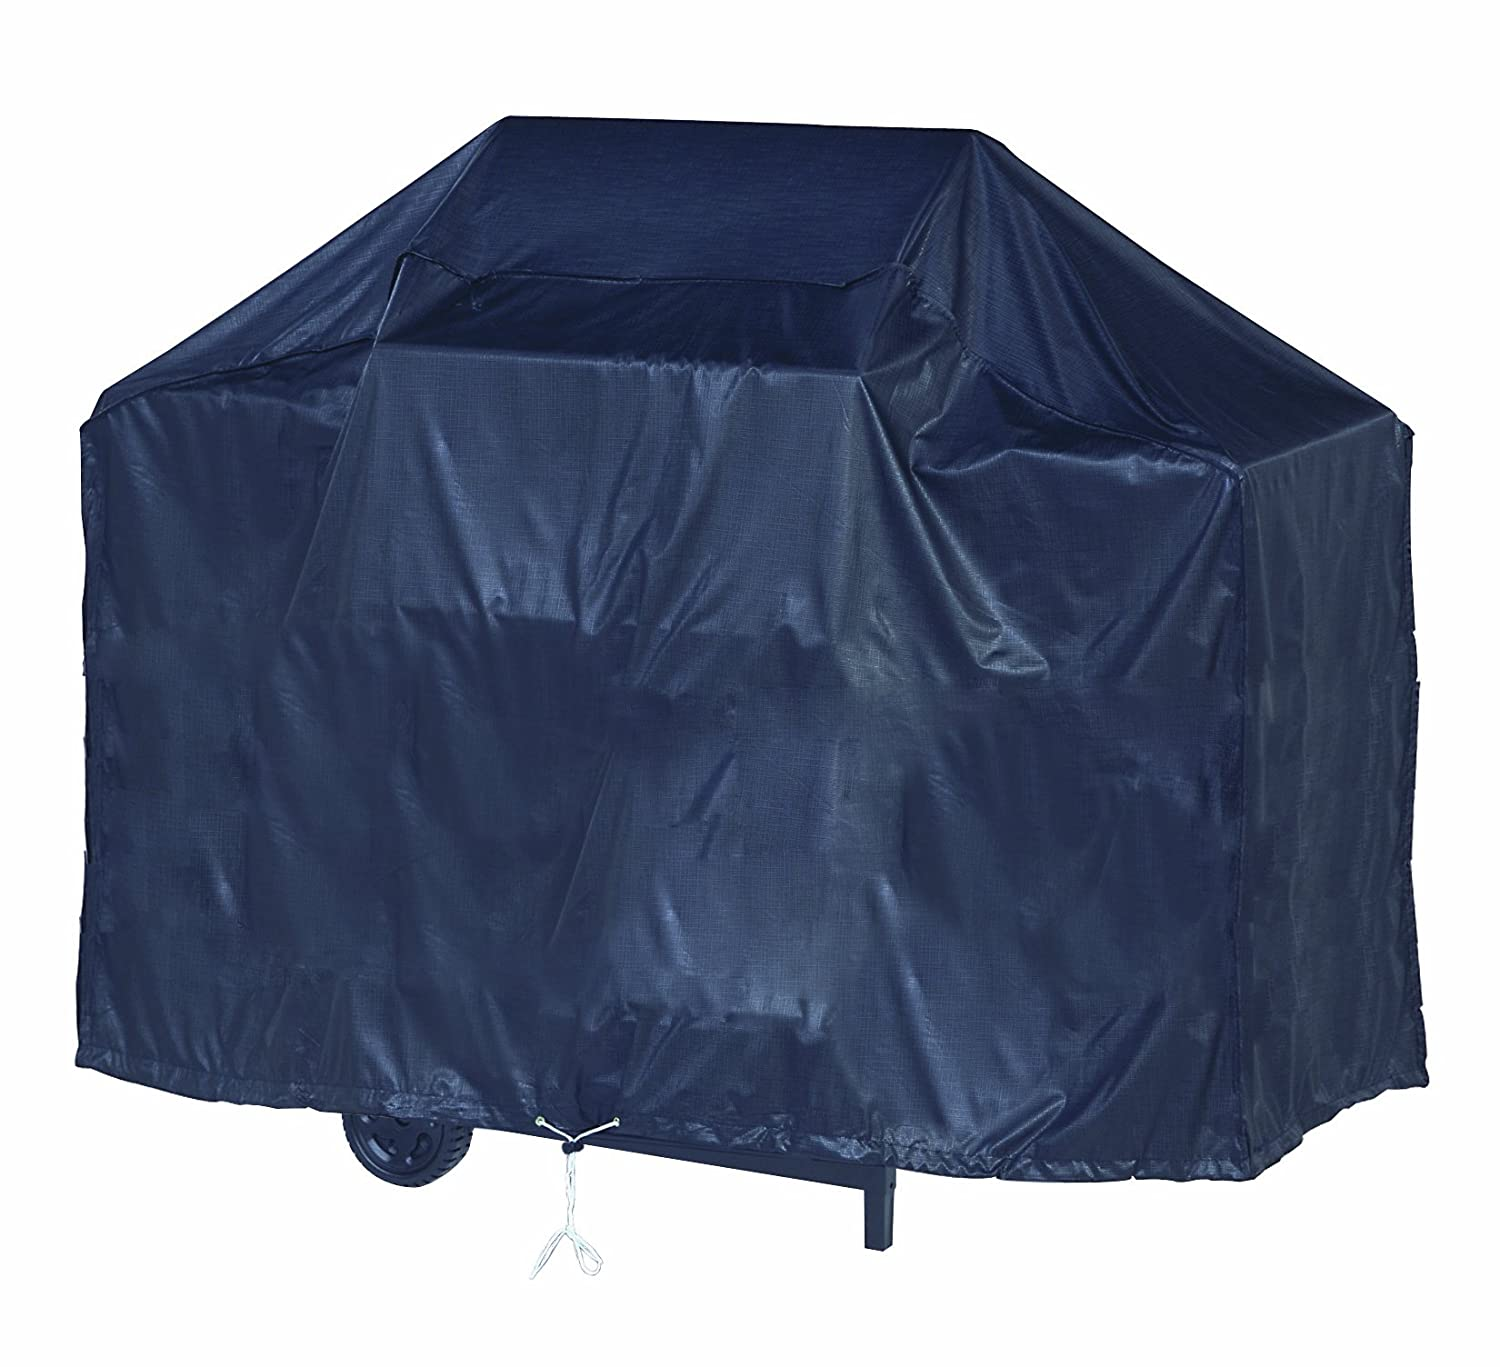 Char broil patio bistro cover - Amazon Com Char Broil Grill Cover 53 Inch Vinyl Discontinued By Manufacturer Outdoor Grill Covers Garden Outdoor